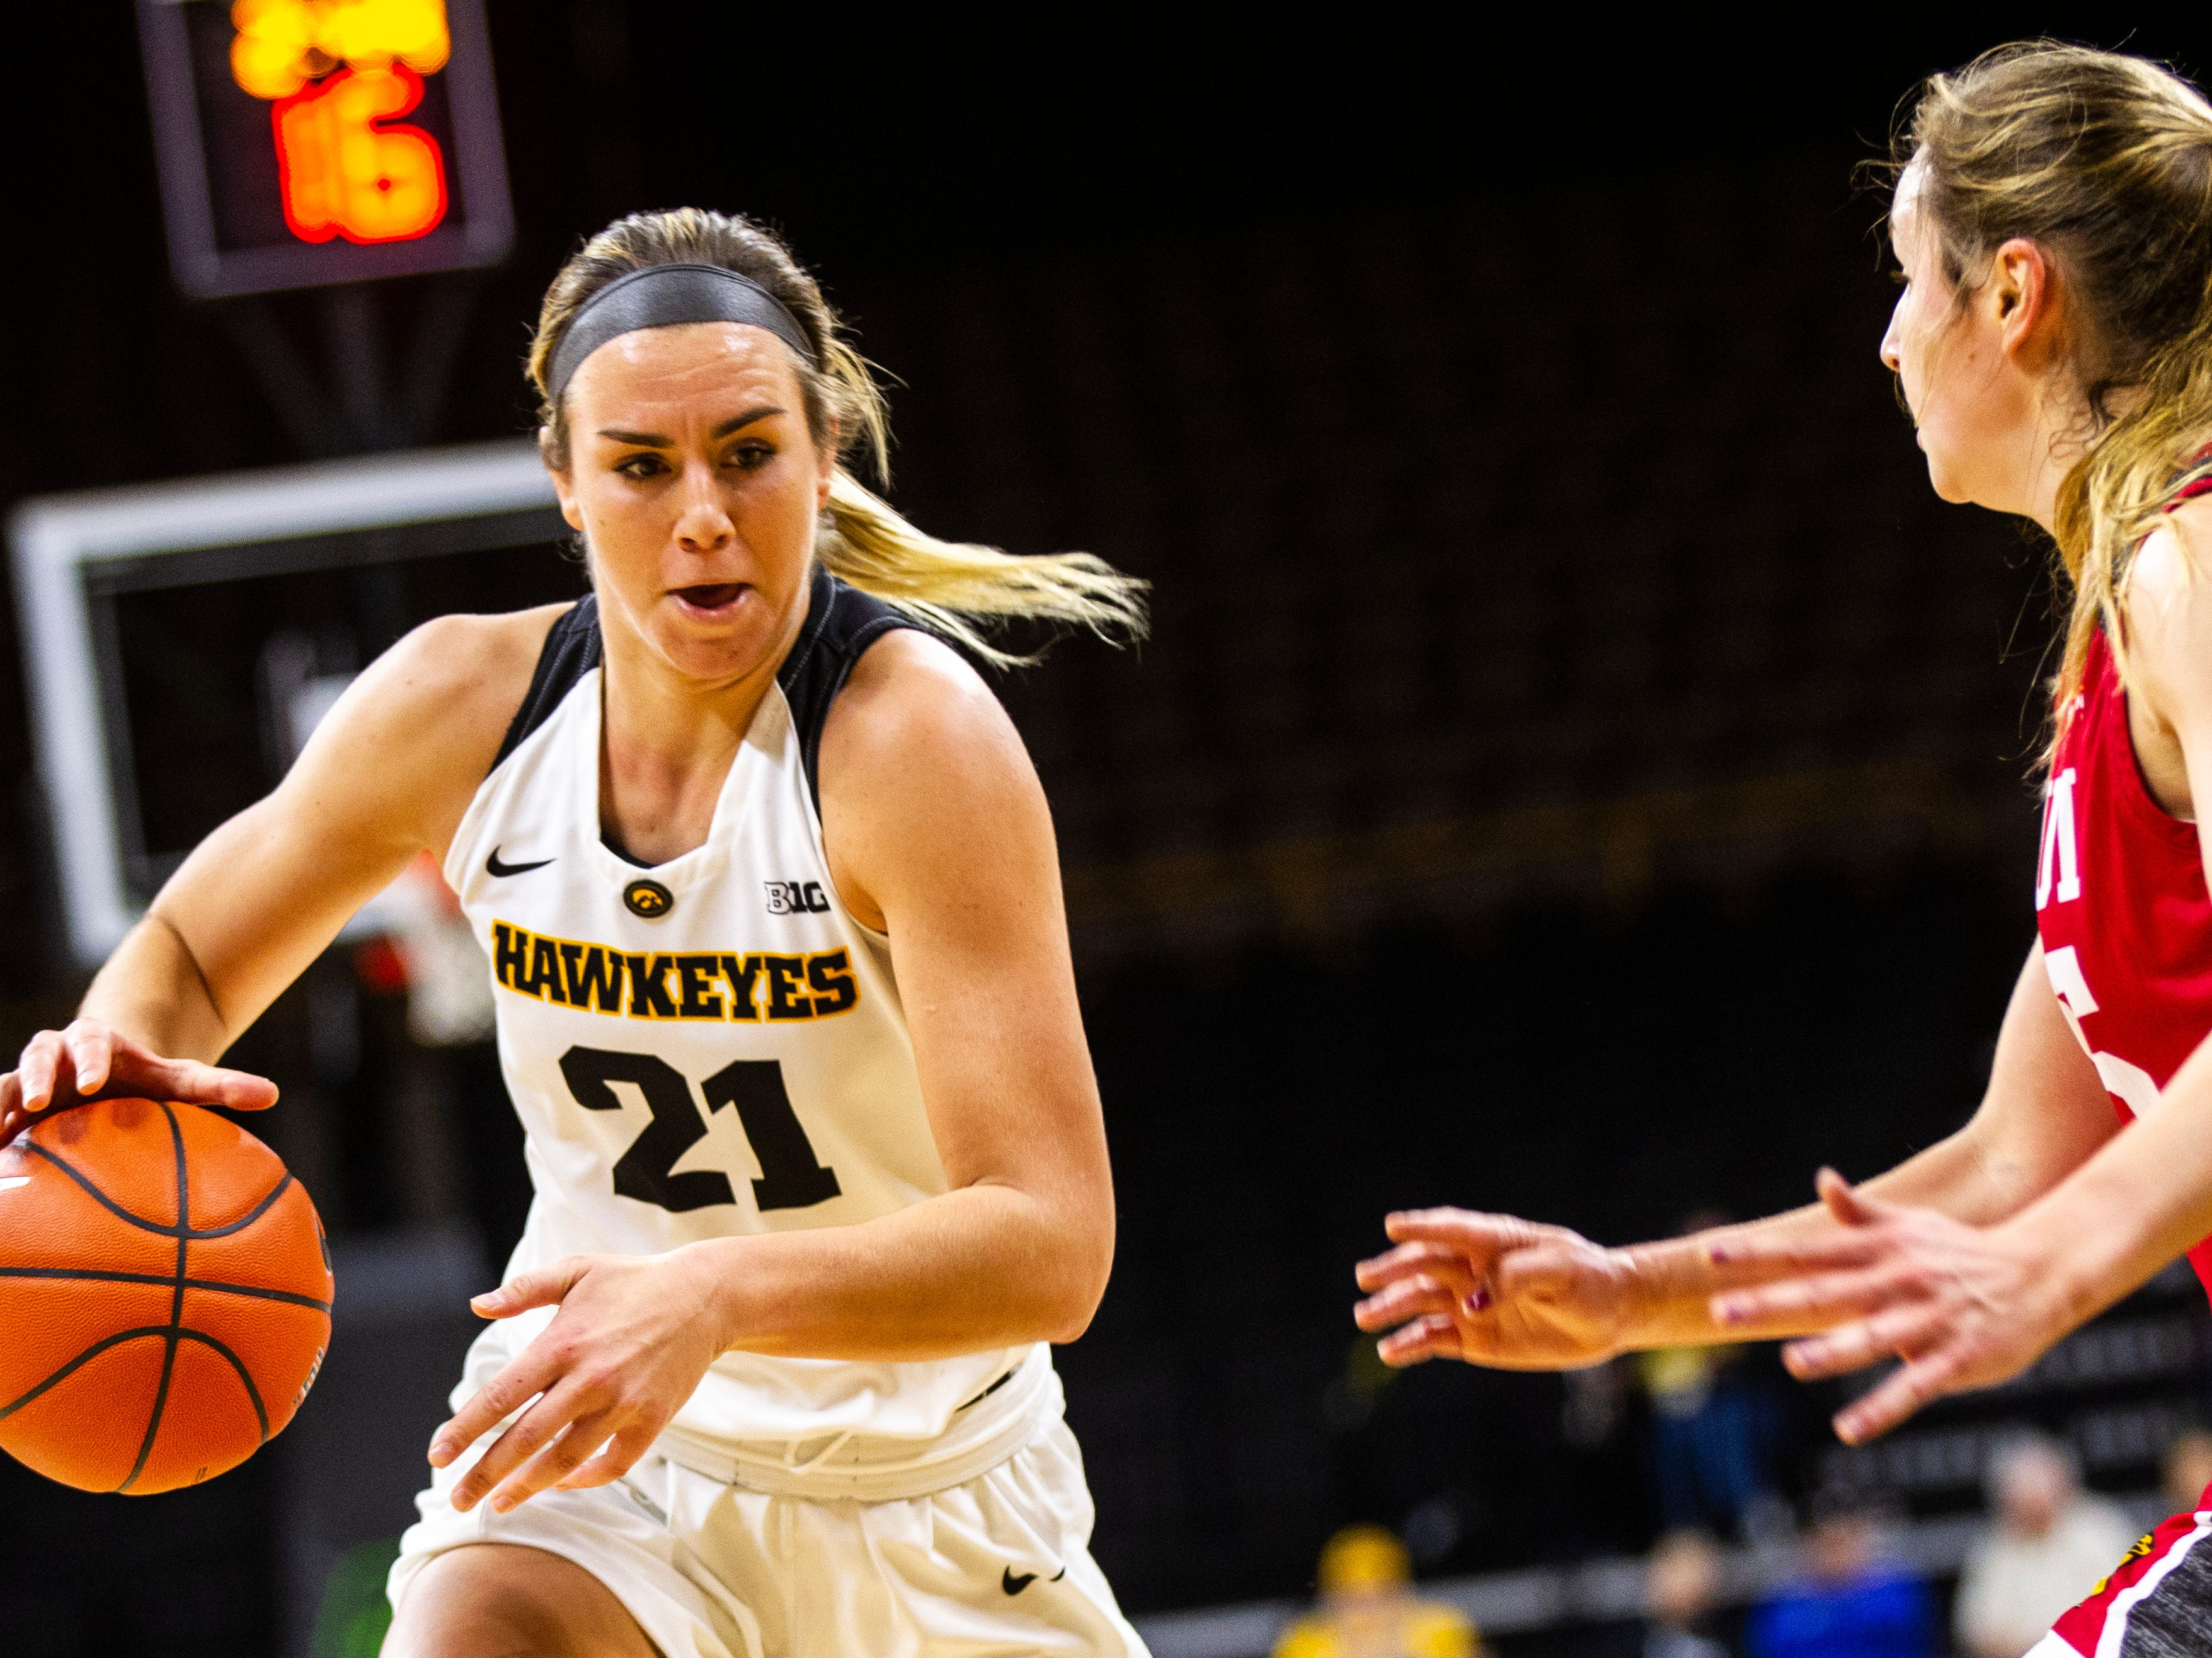 Iowa forward Hannah Stewart (21) drives to the hoop during a NCAA women's basketball game on Saturday, Dec. 8, 2018, at Carver-Hawkeye Arena in Iowa City.